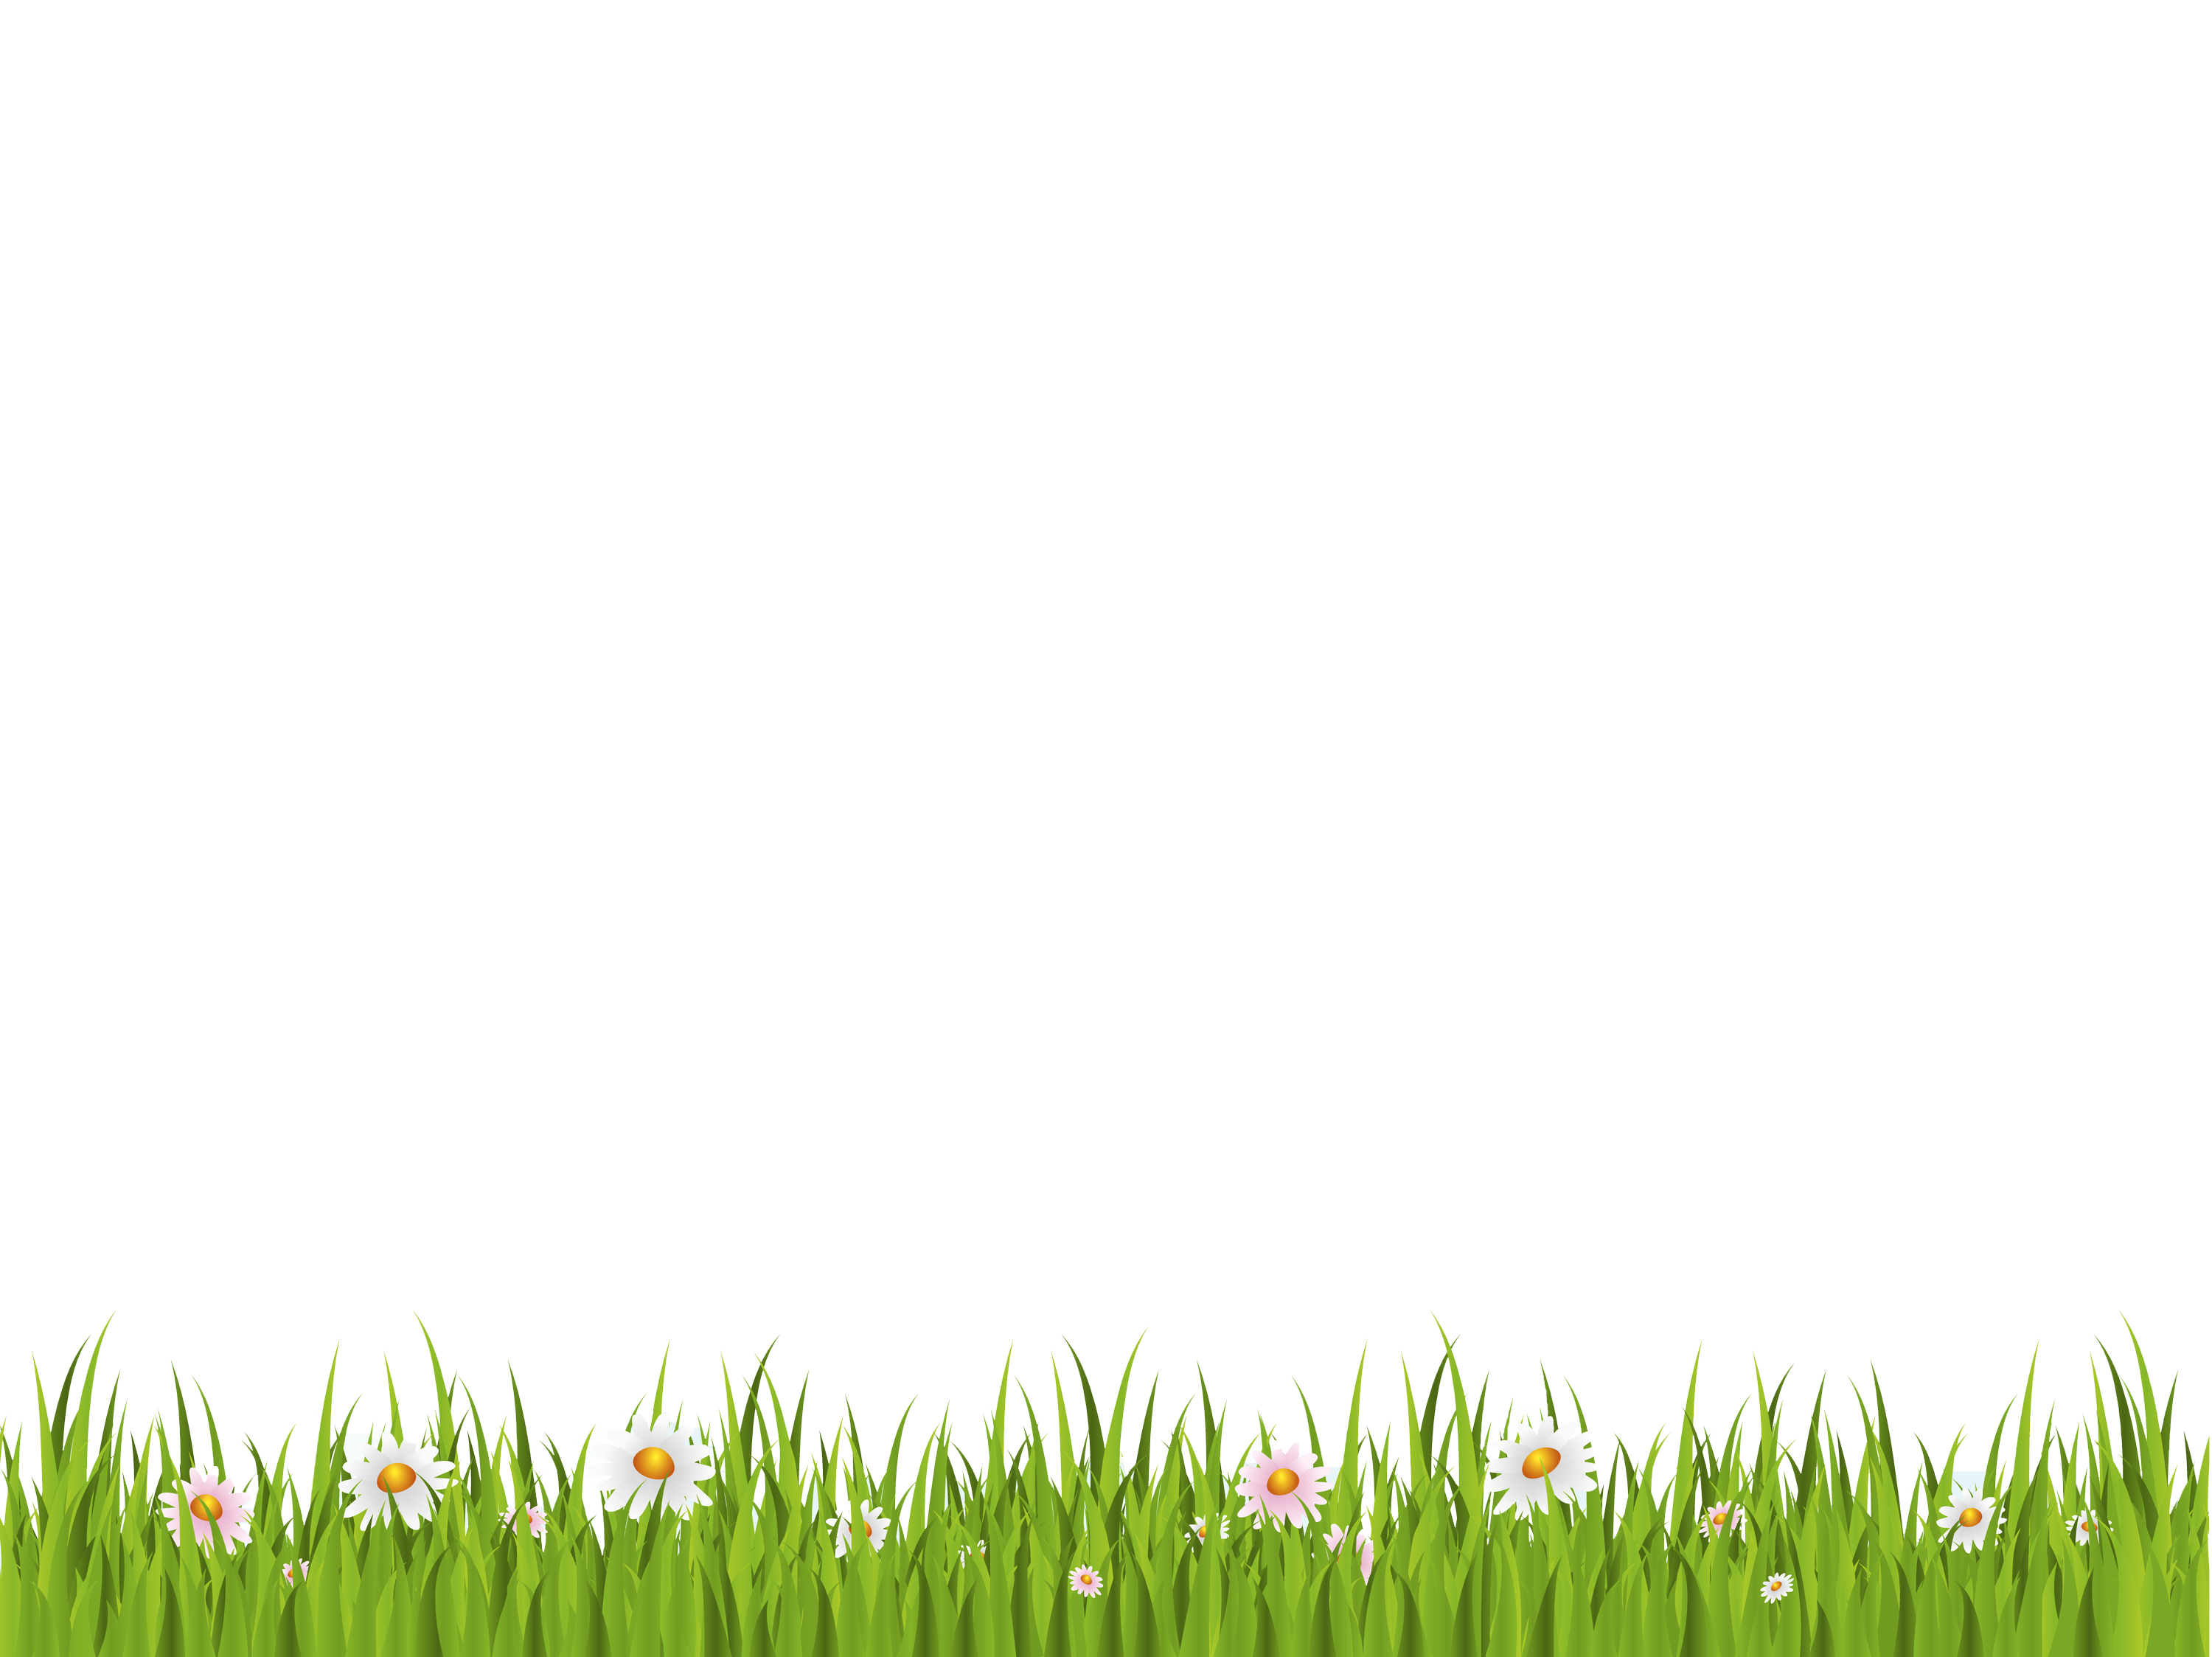 Backgrond clipart png.